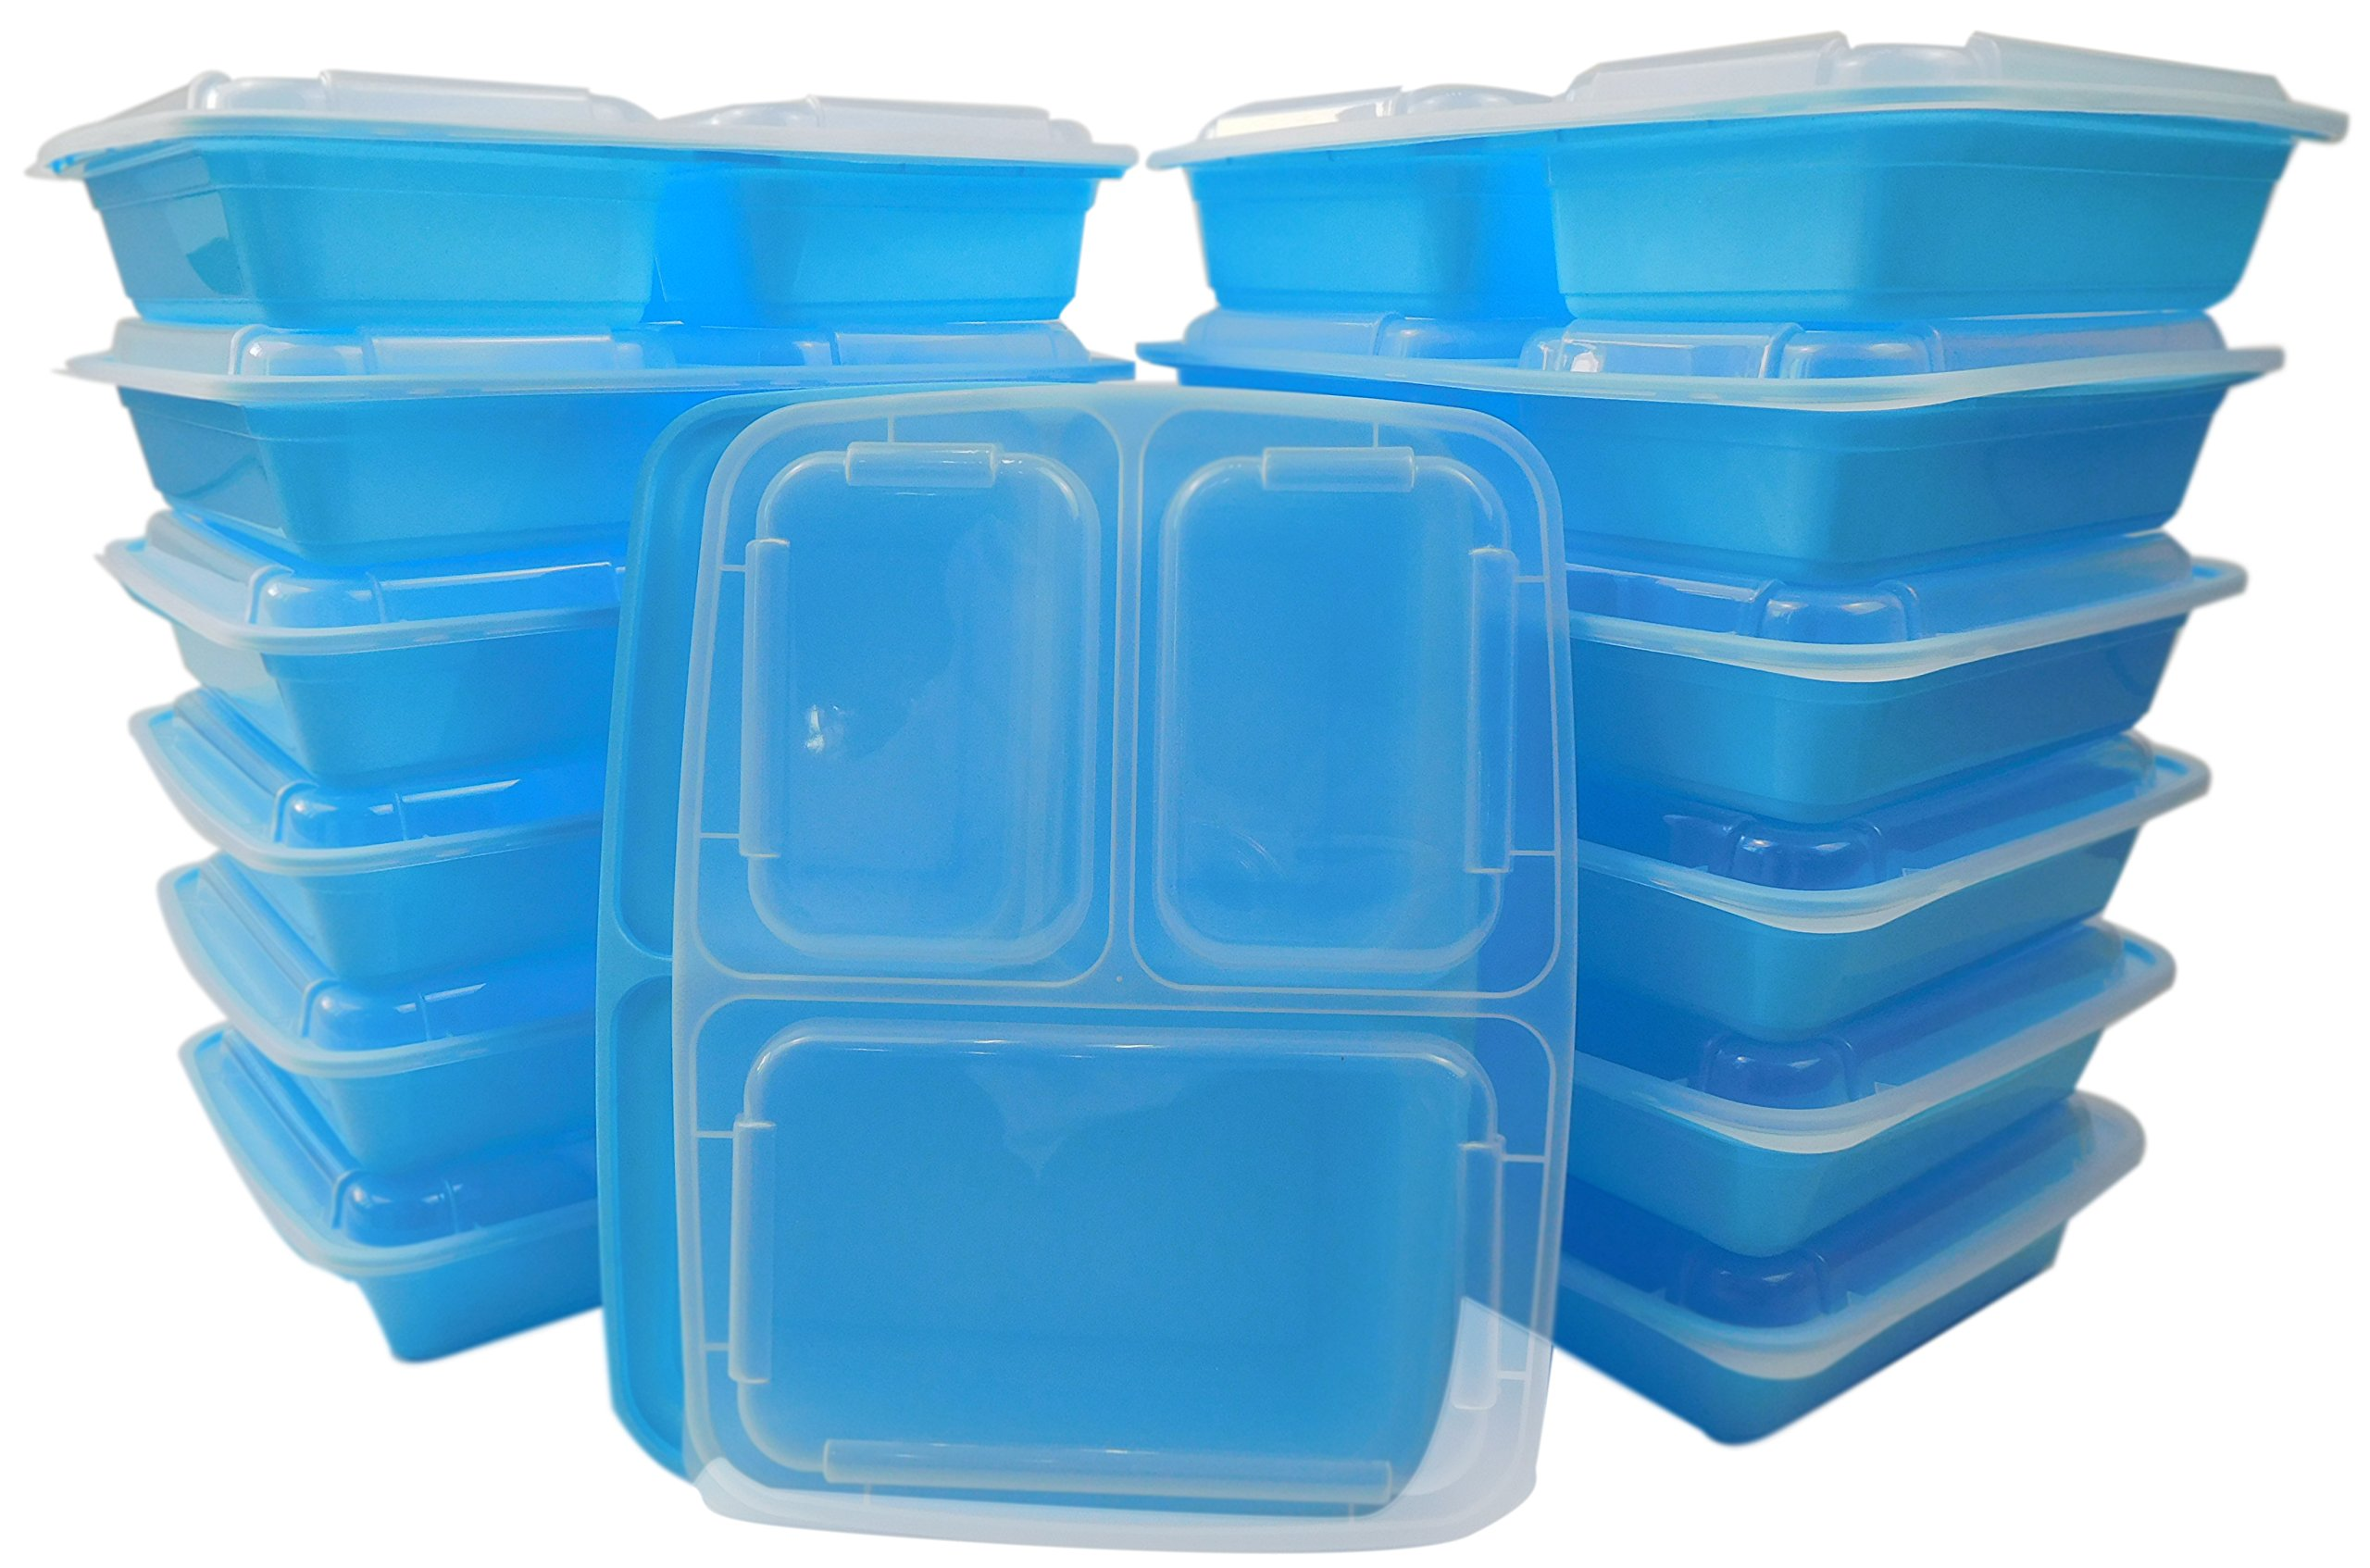 Table To Go 240-Pack Bento Lunch Boxes with Lids (3 Compartment/ 36 oz) | Microwaveable, Dishwasher & Freezer Safe Meal Prep Containers | Reusable Dish Set for Prepping, Portion Control & More (Blue)